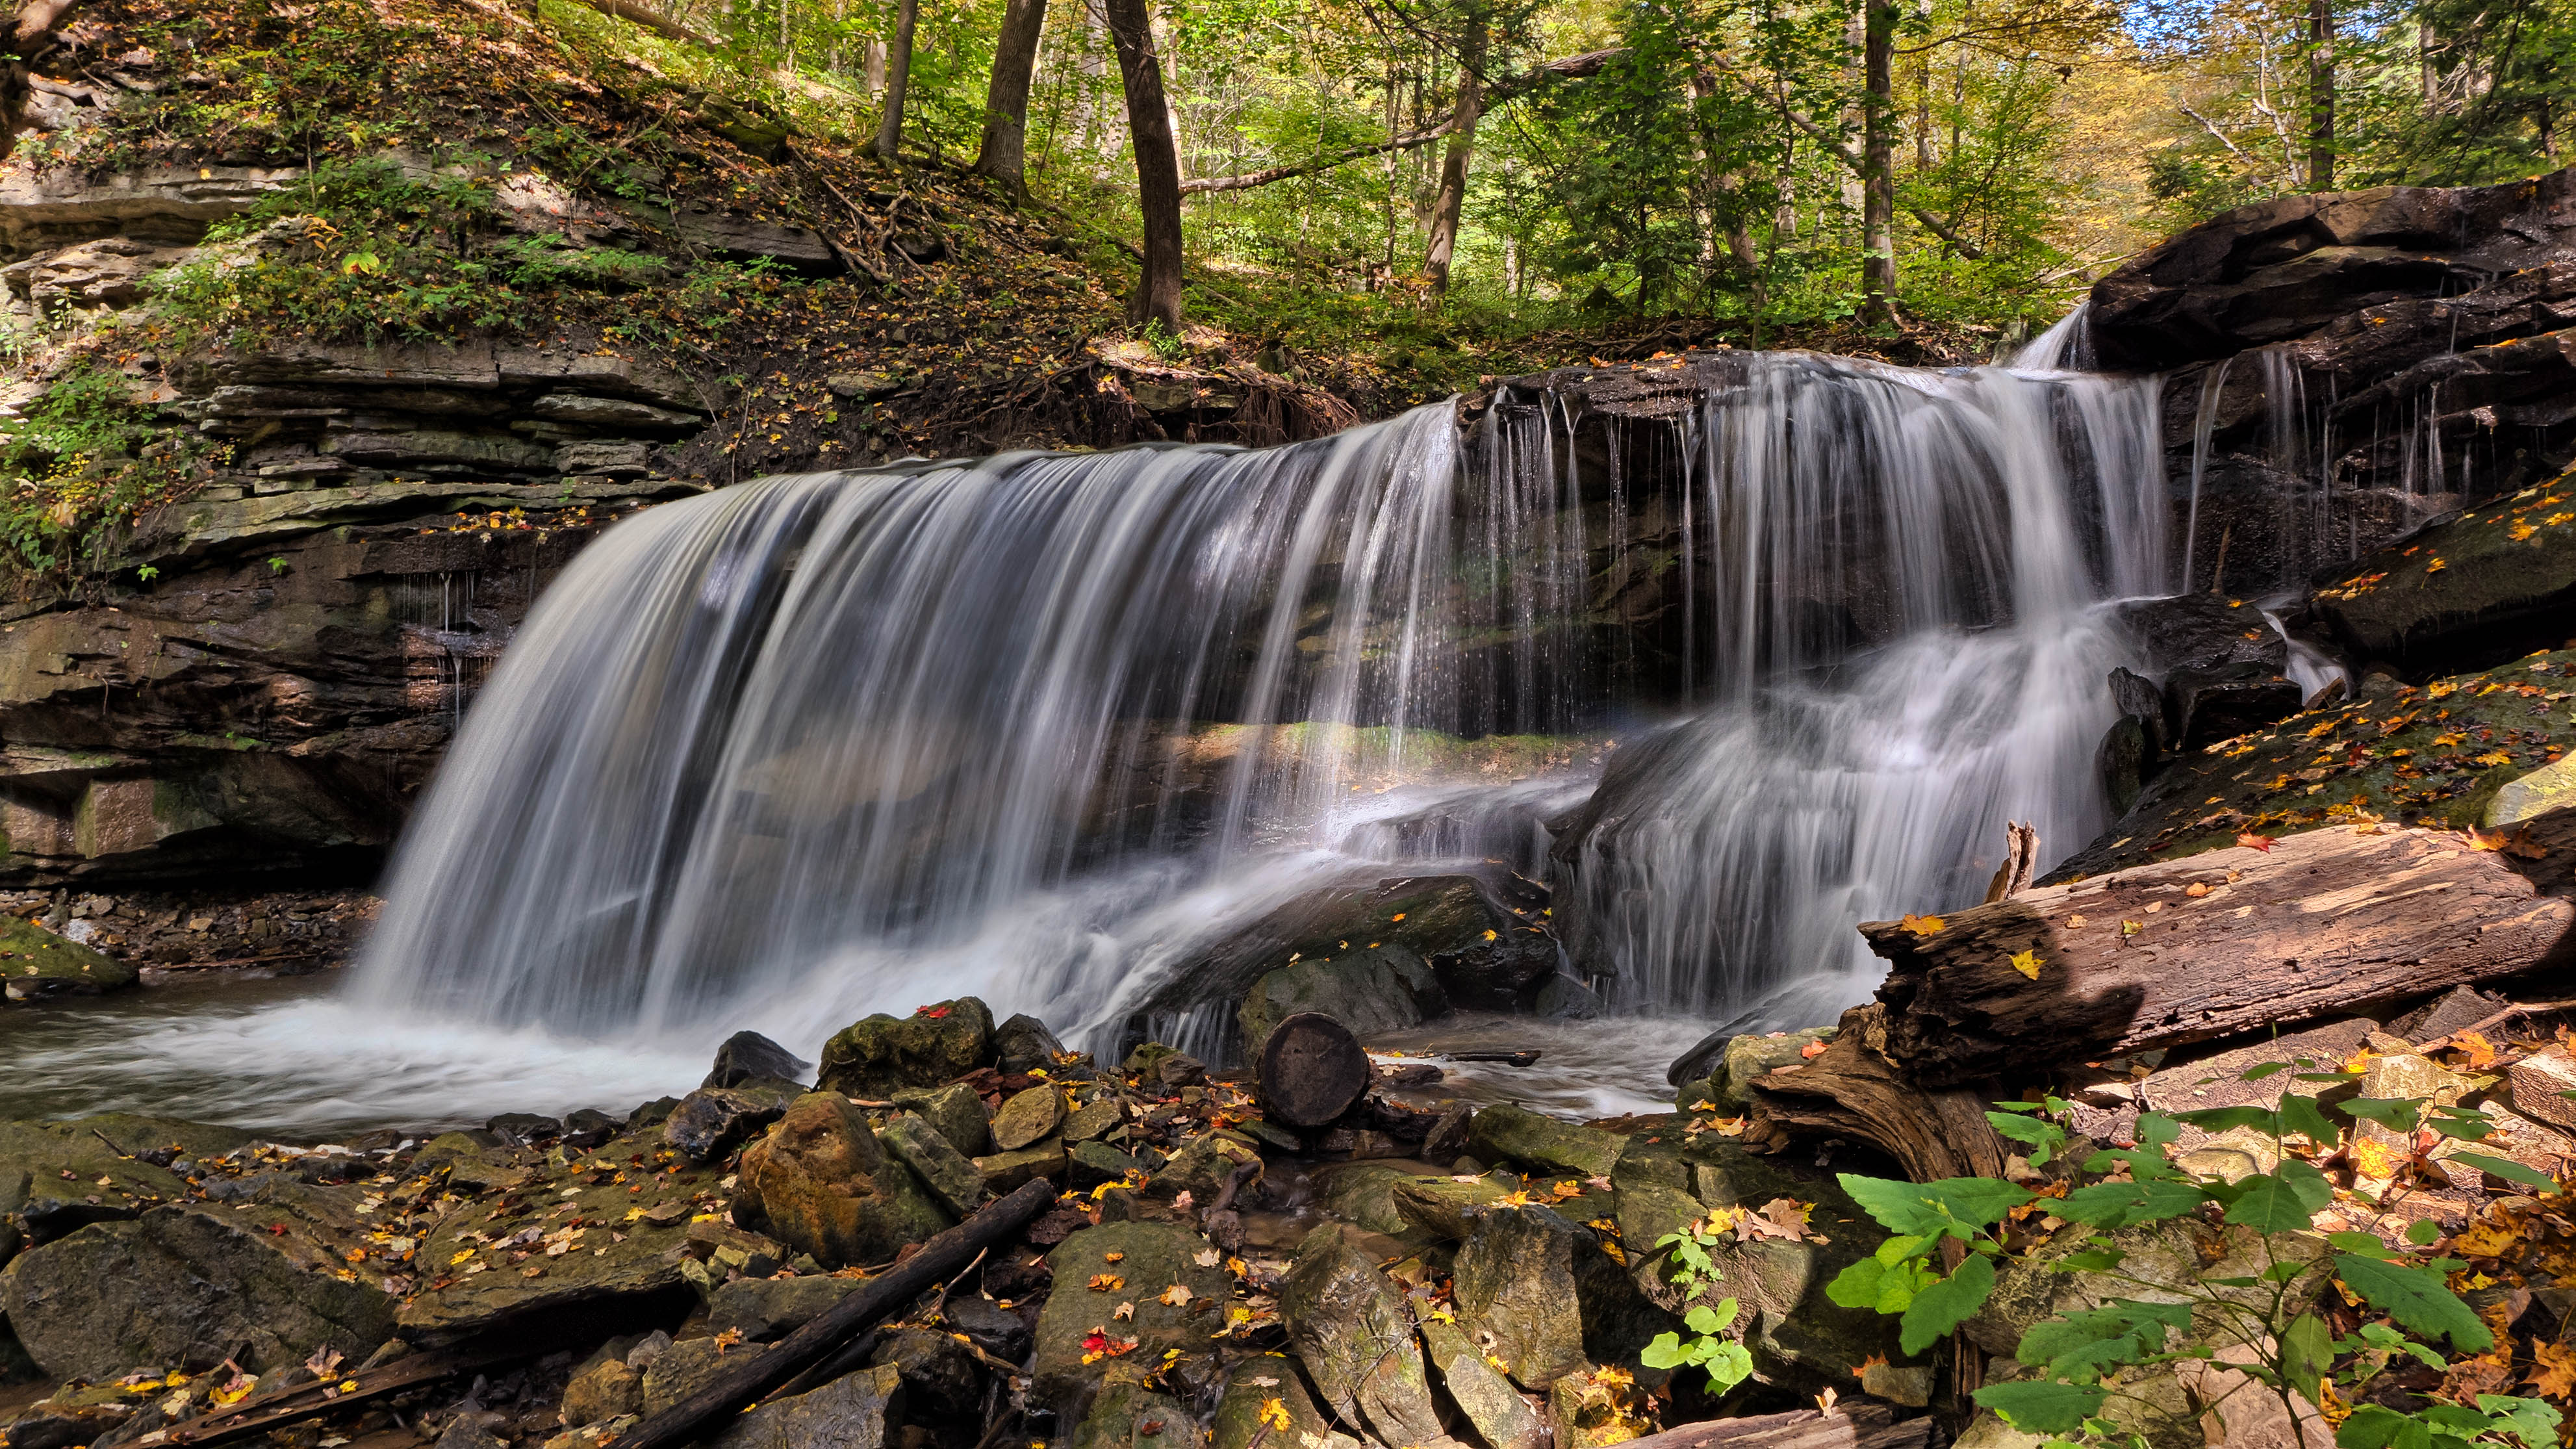 Beautiful Fall Landscape Wallpaper Water Falls In Time Lapse Photography 183 Free Stock Photo